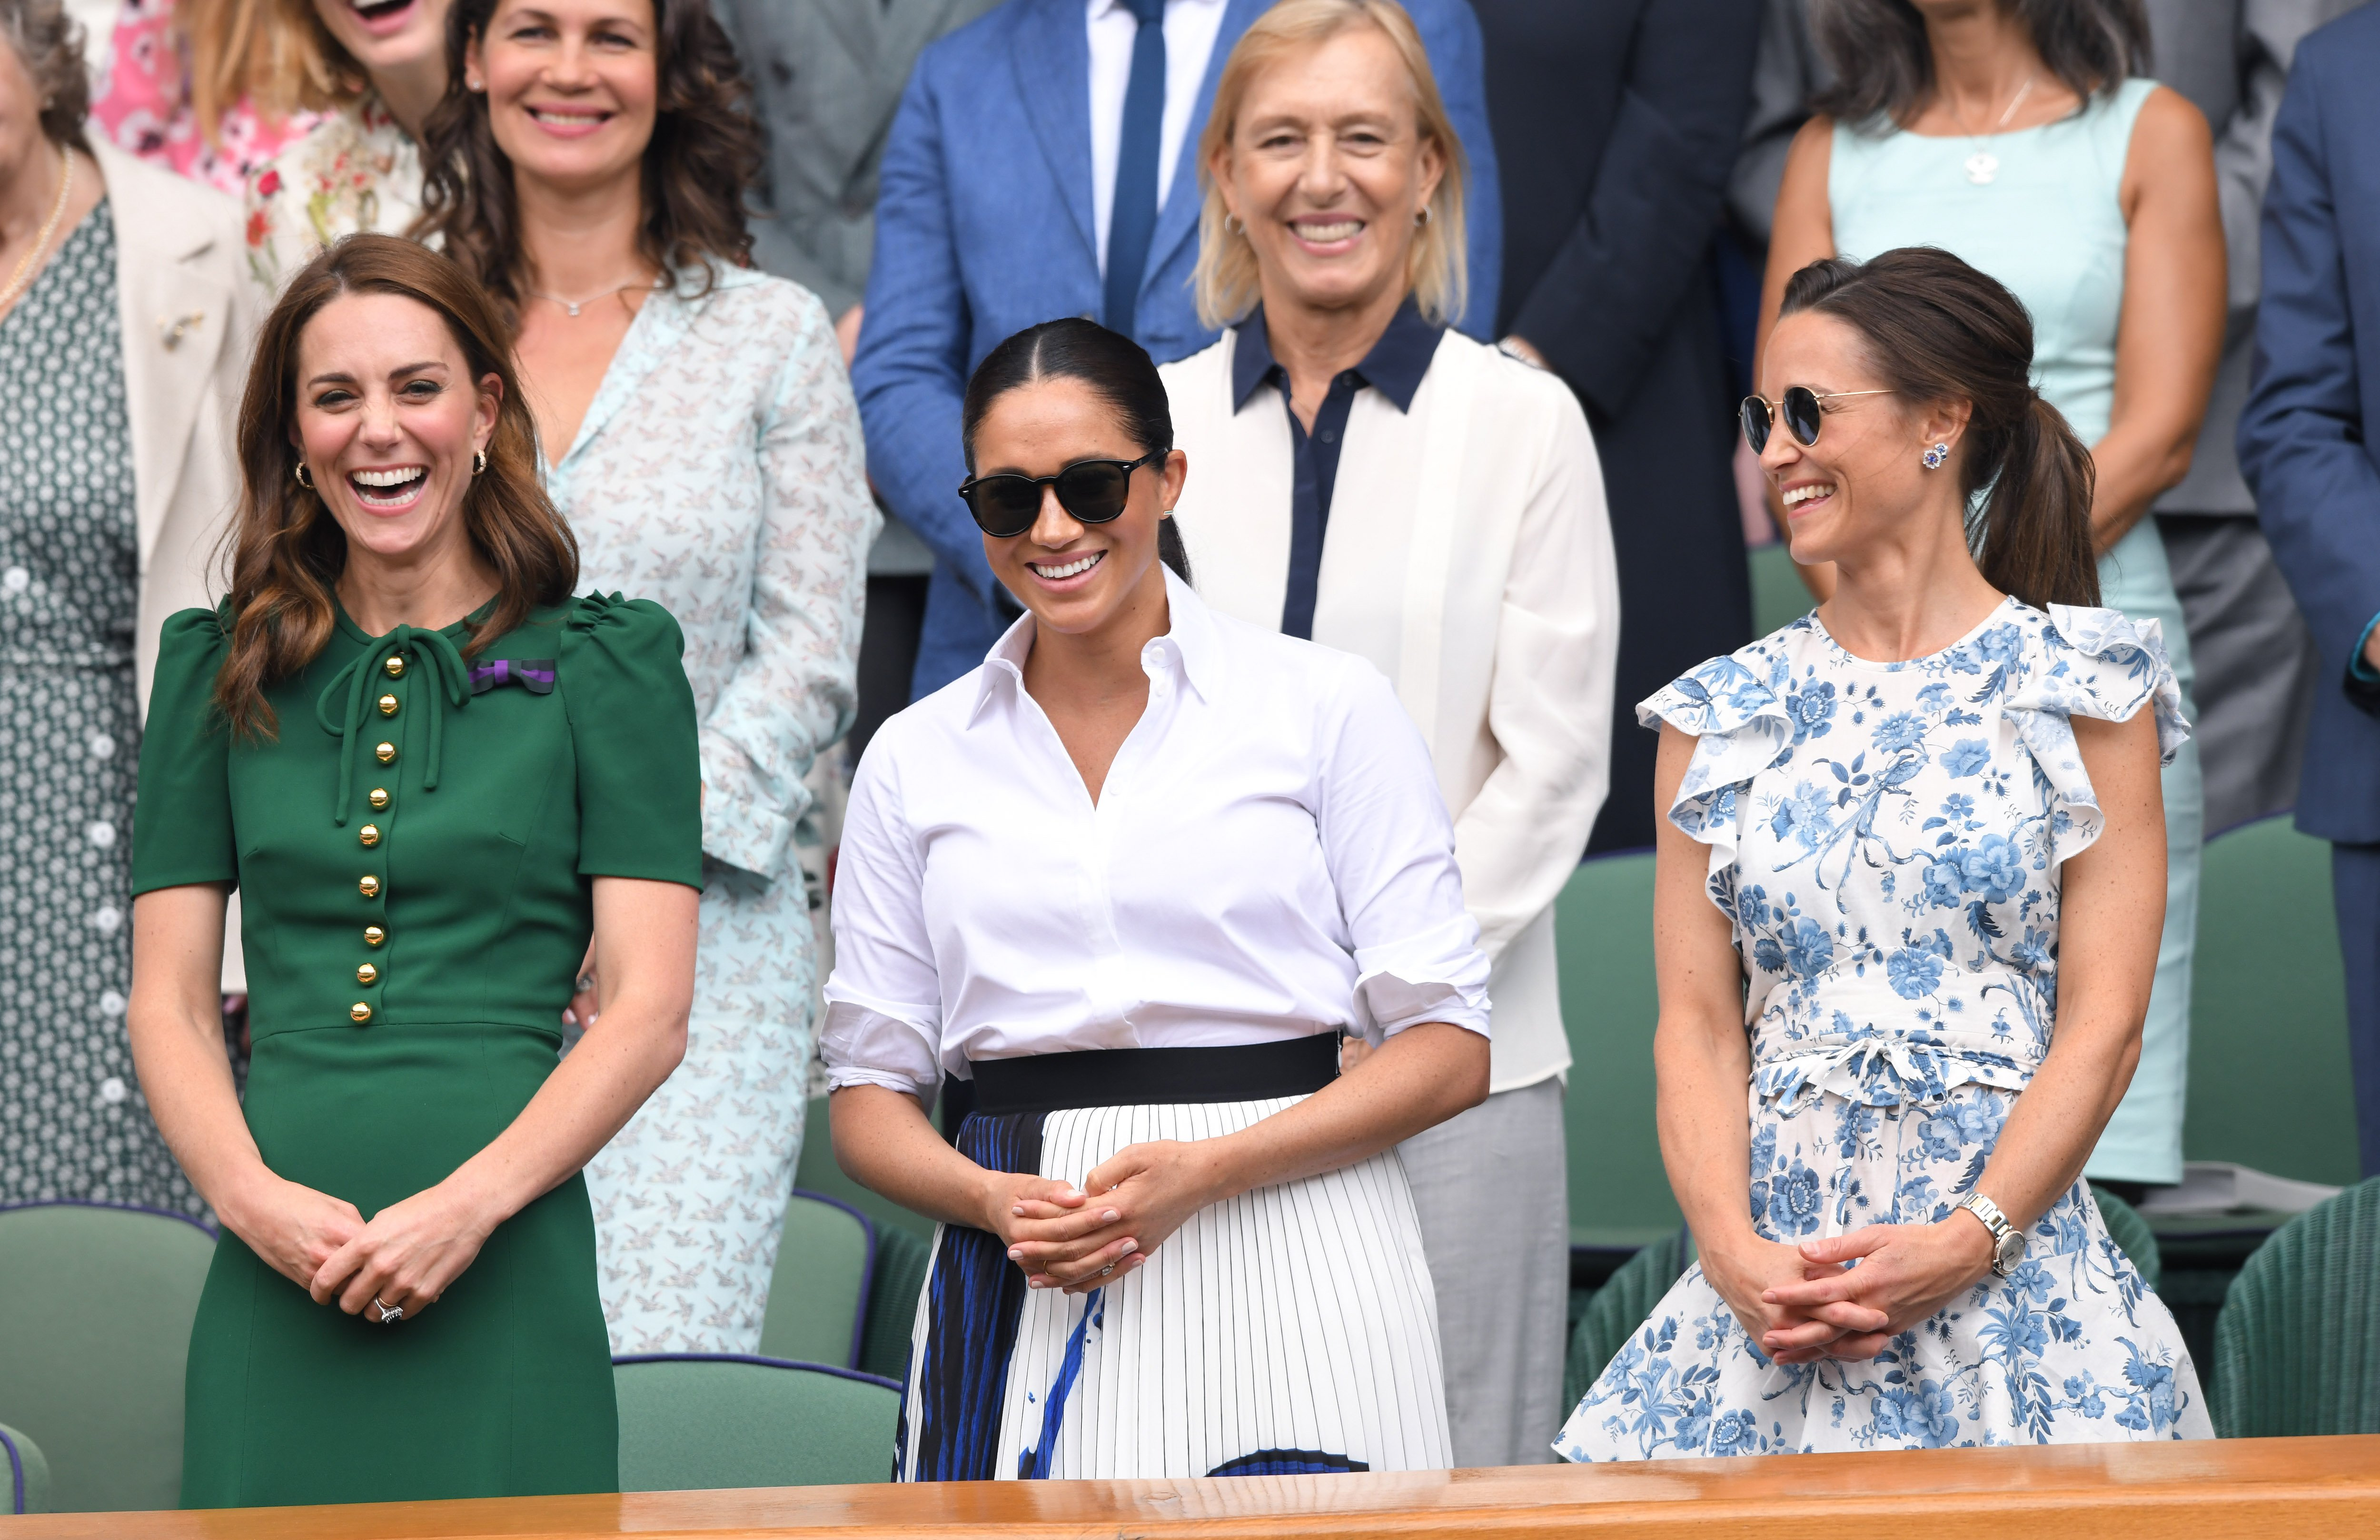 Duchess Kate, Duchess Meghan, and Pippa Middleton at Wimbledon on July 13, 2019 | Photo: Getty Images